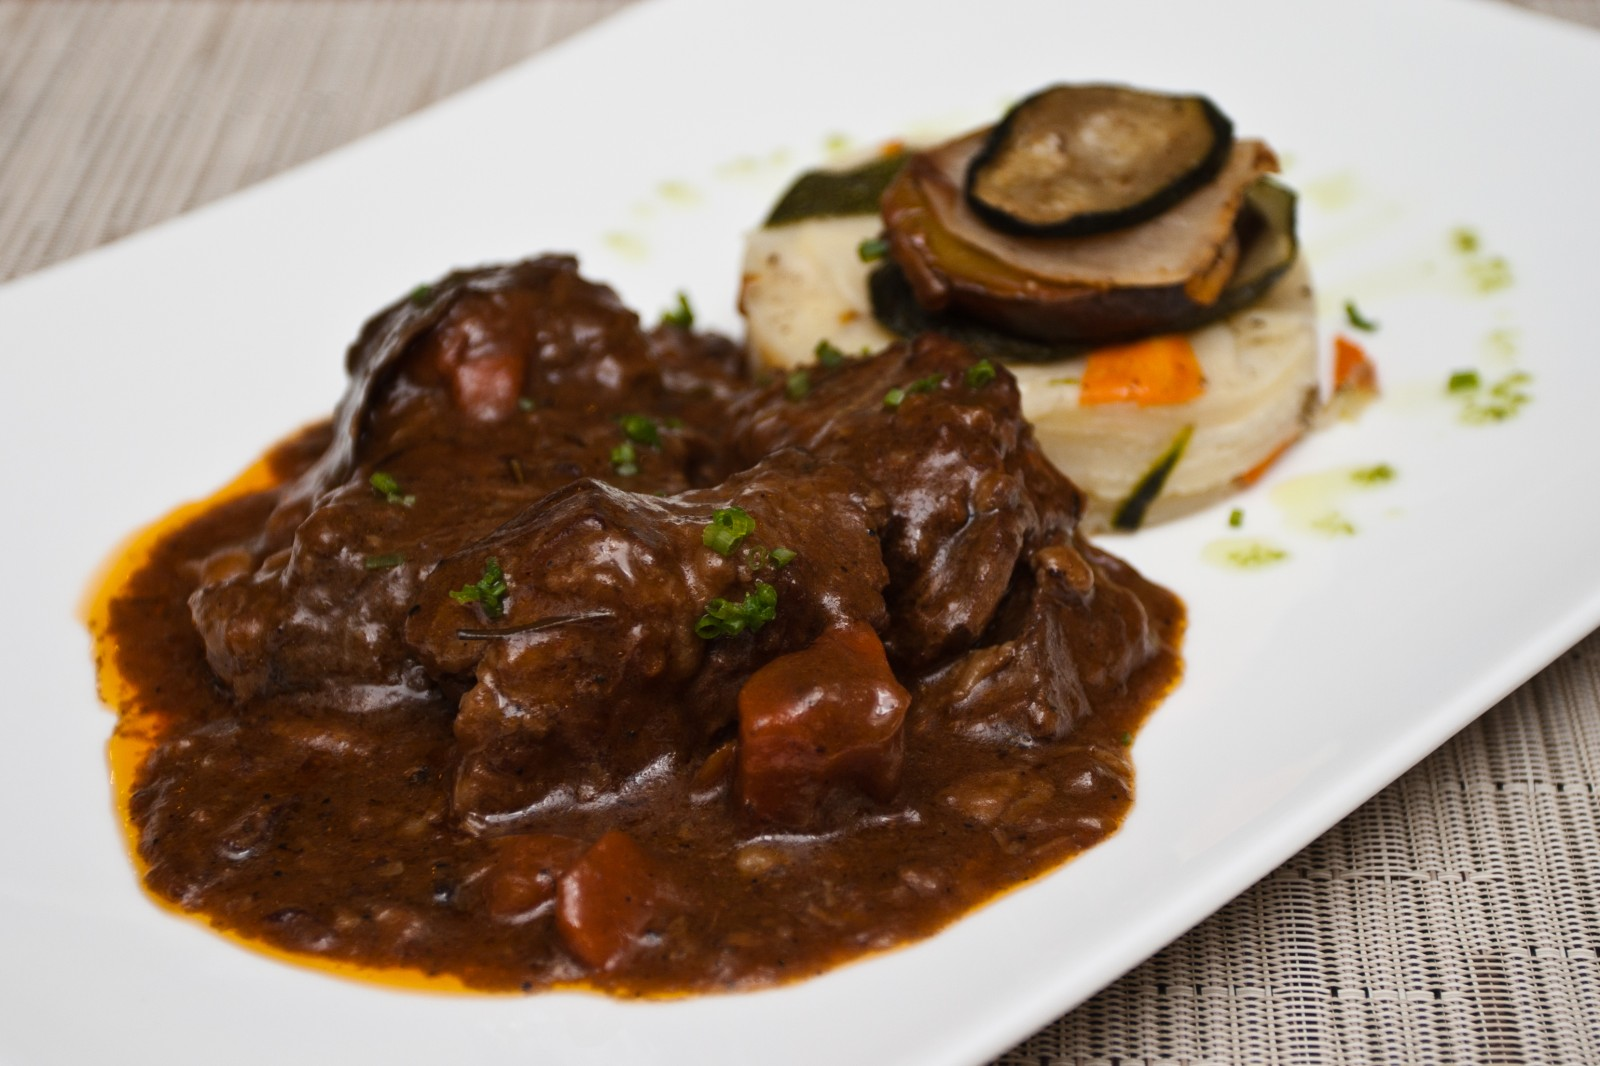 Where to go for France's best Boeuf Bourguignon, a savory and rich traditional beef stew from Burgundy.